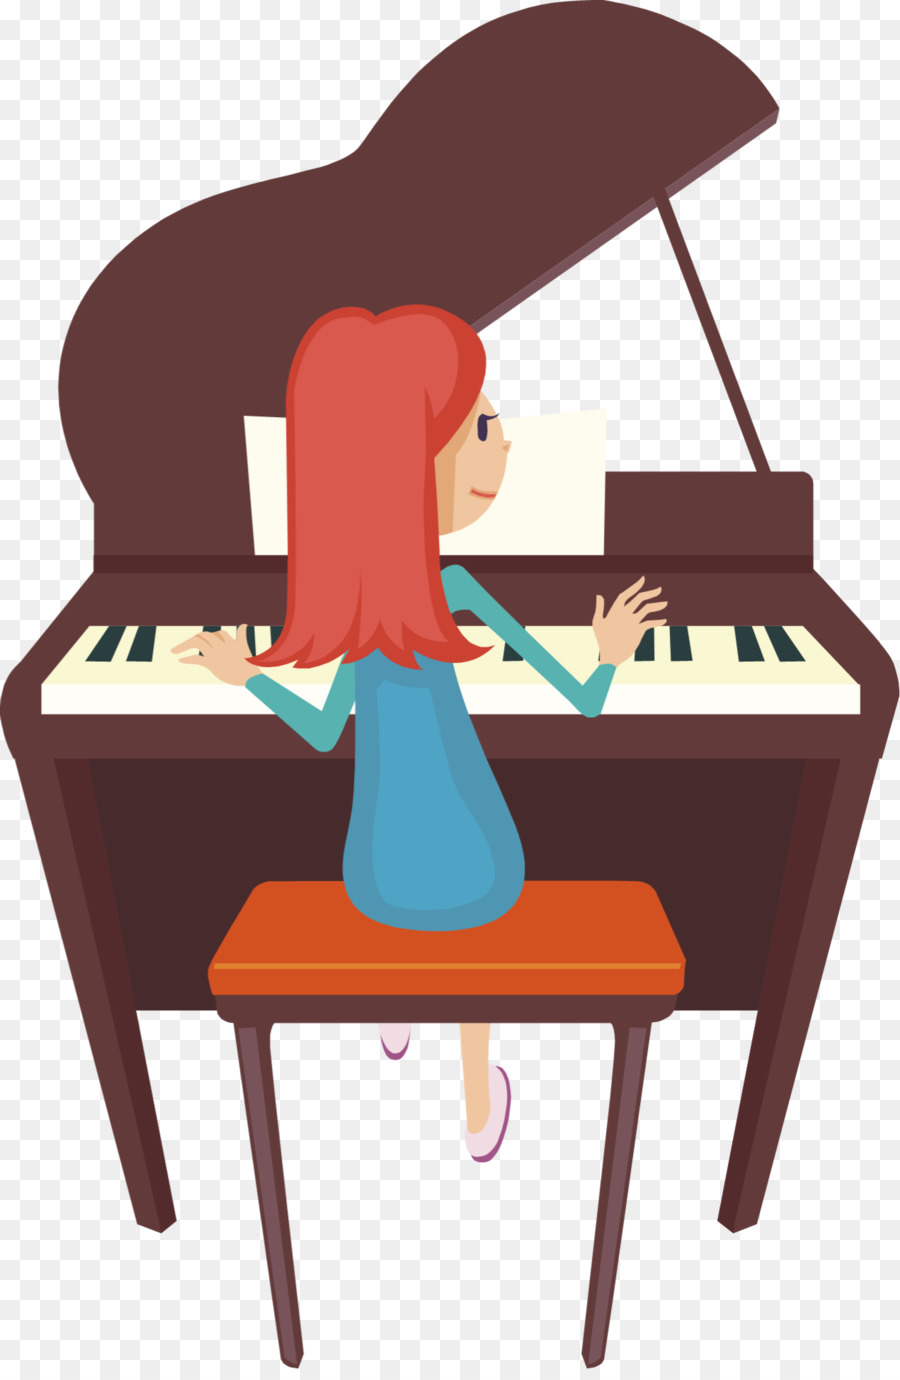 Player piano Pianist Clip art.